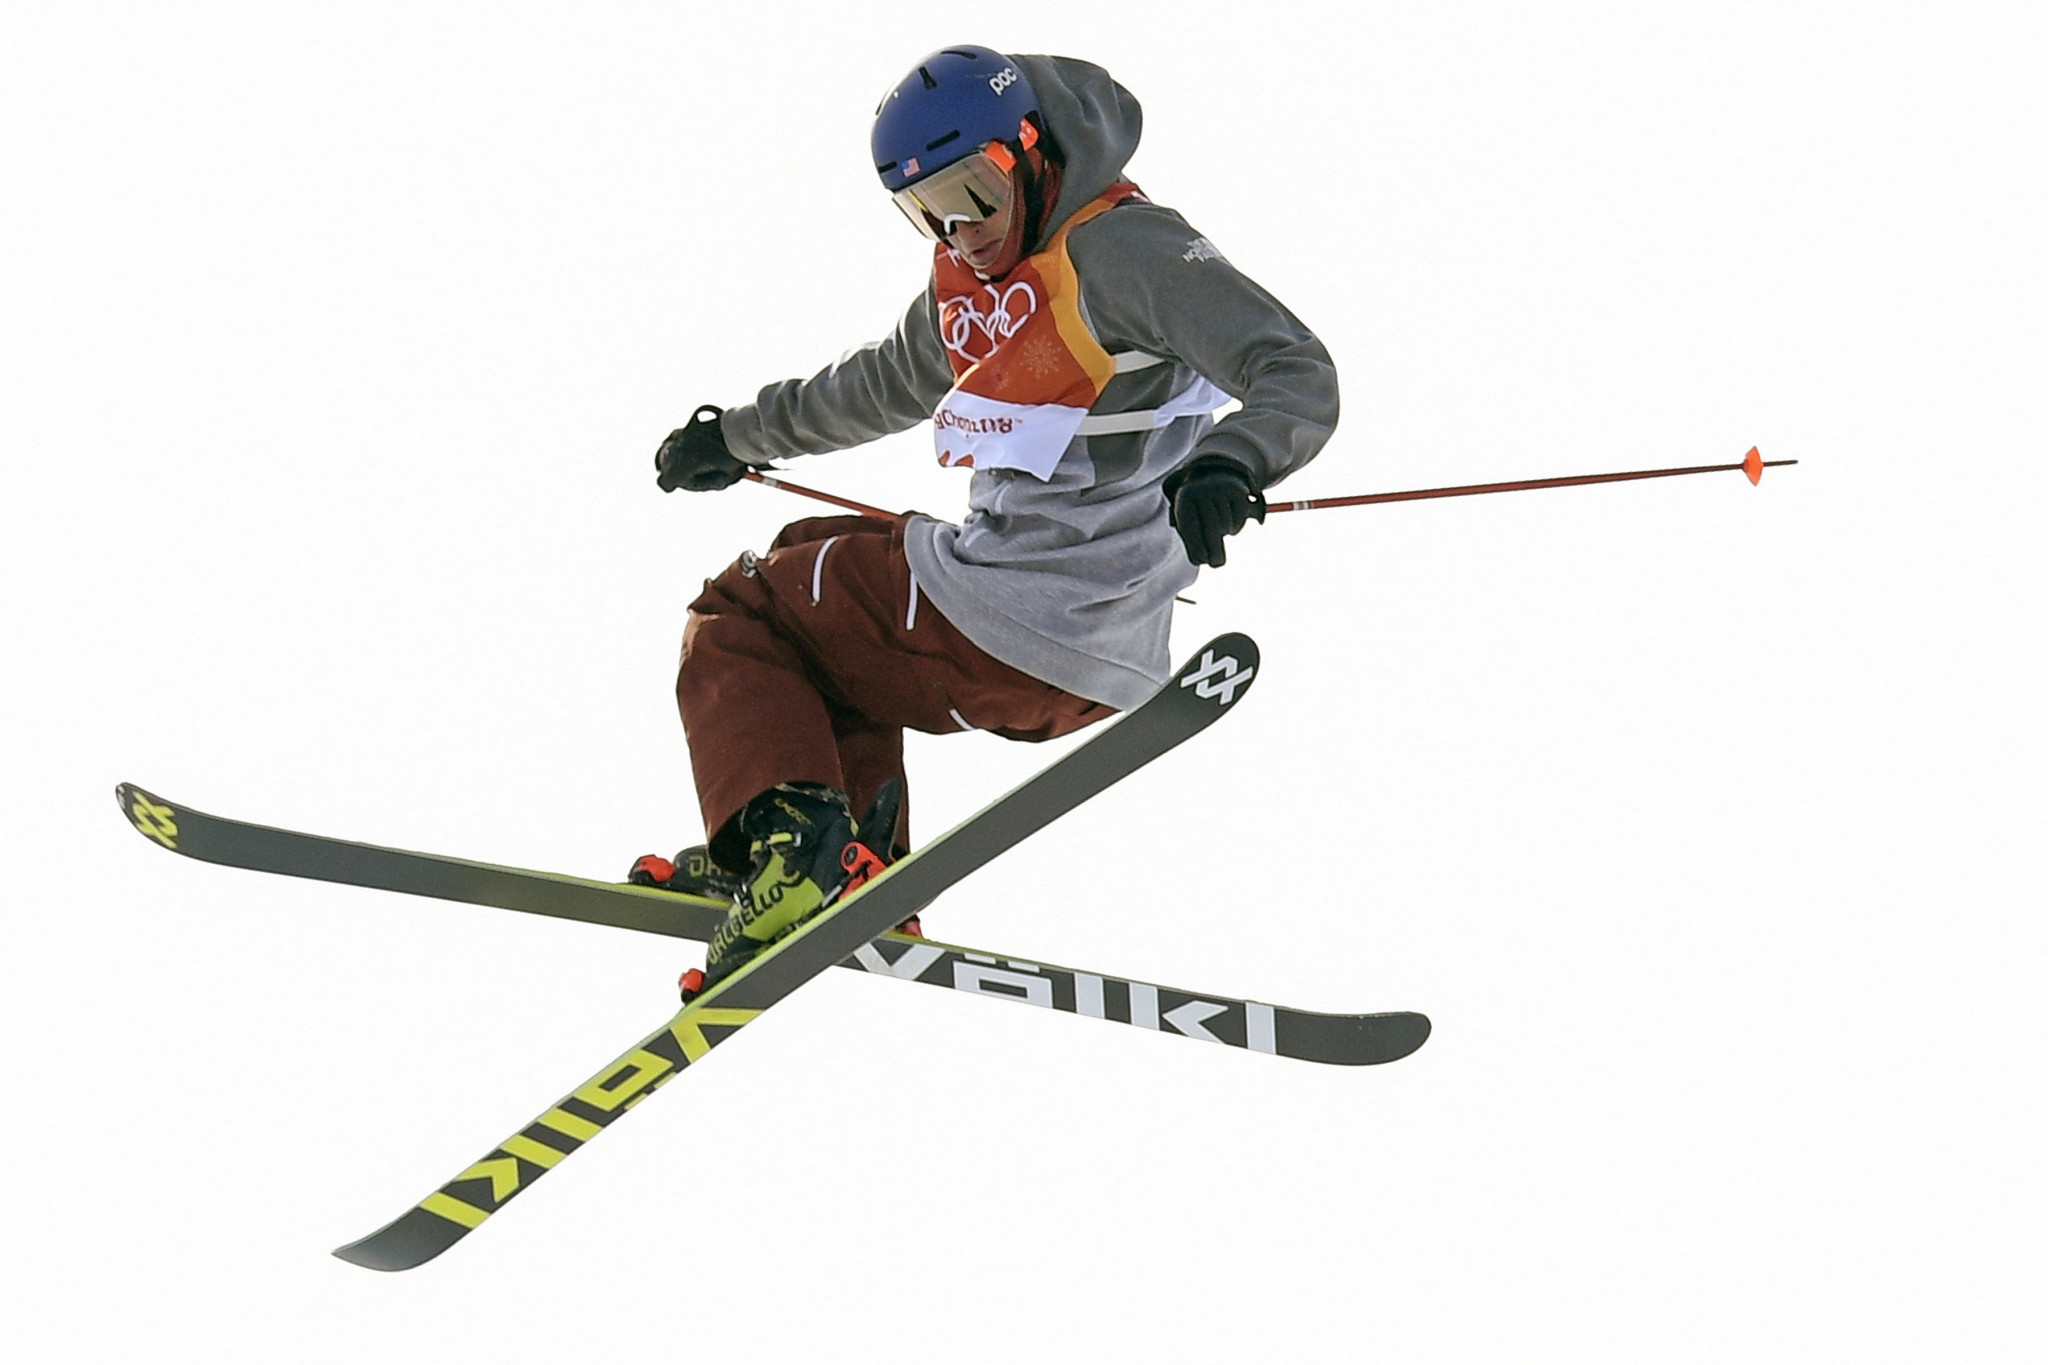 Goepper leads men's qualification at FIS Slopestyle World Cup in Seiseralm